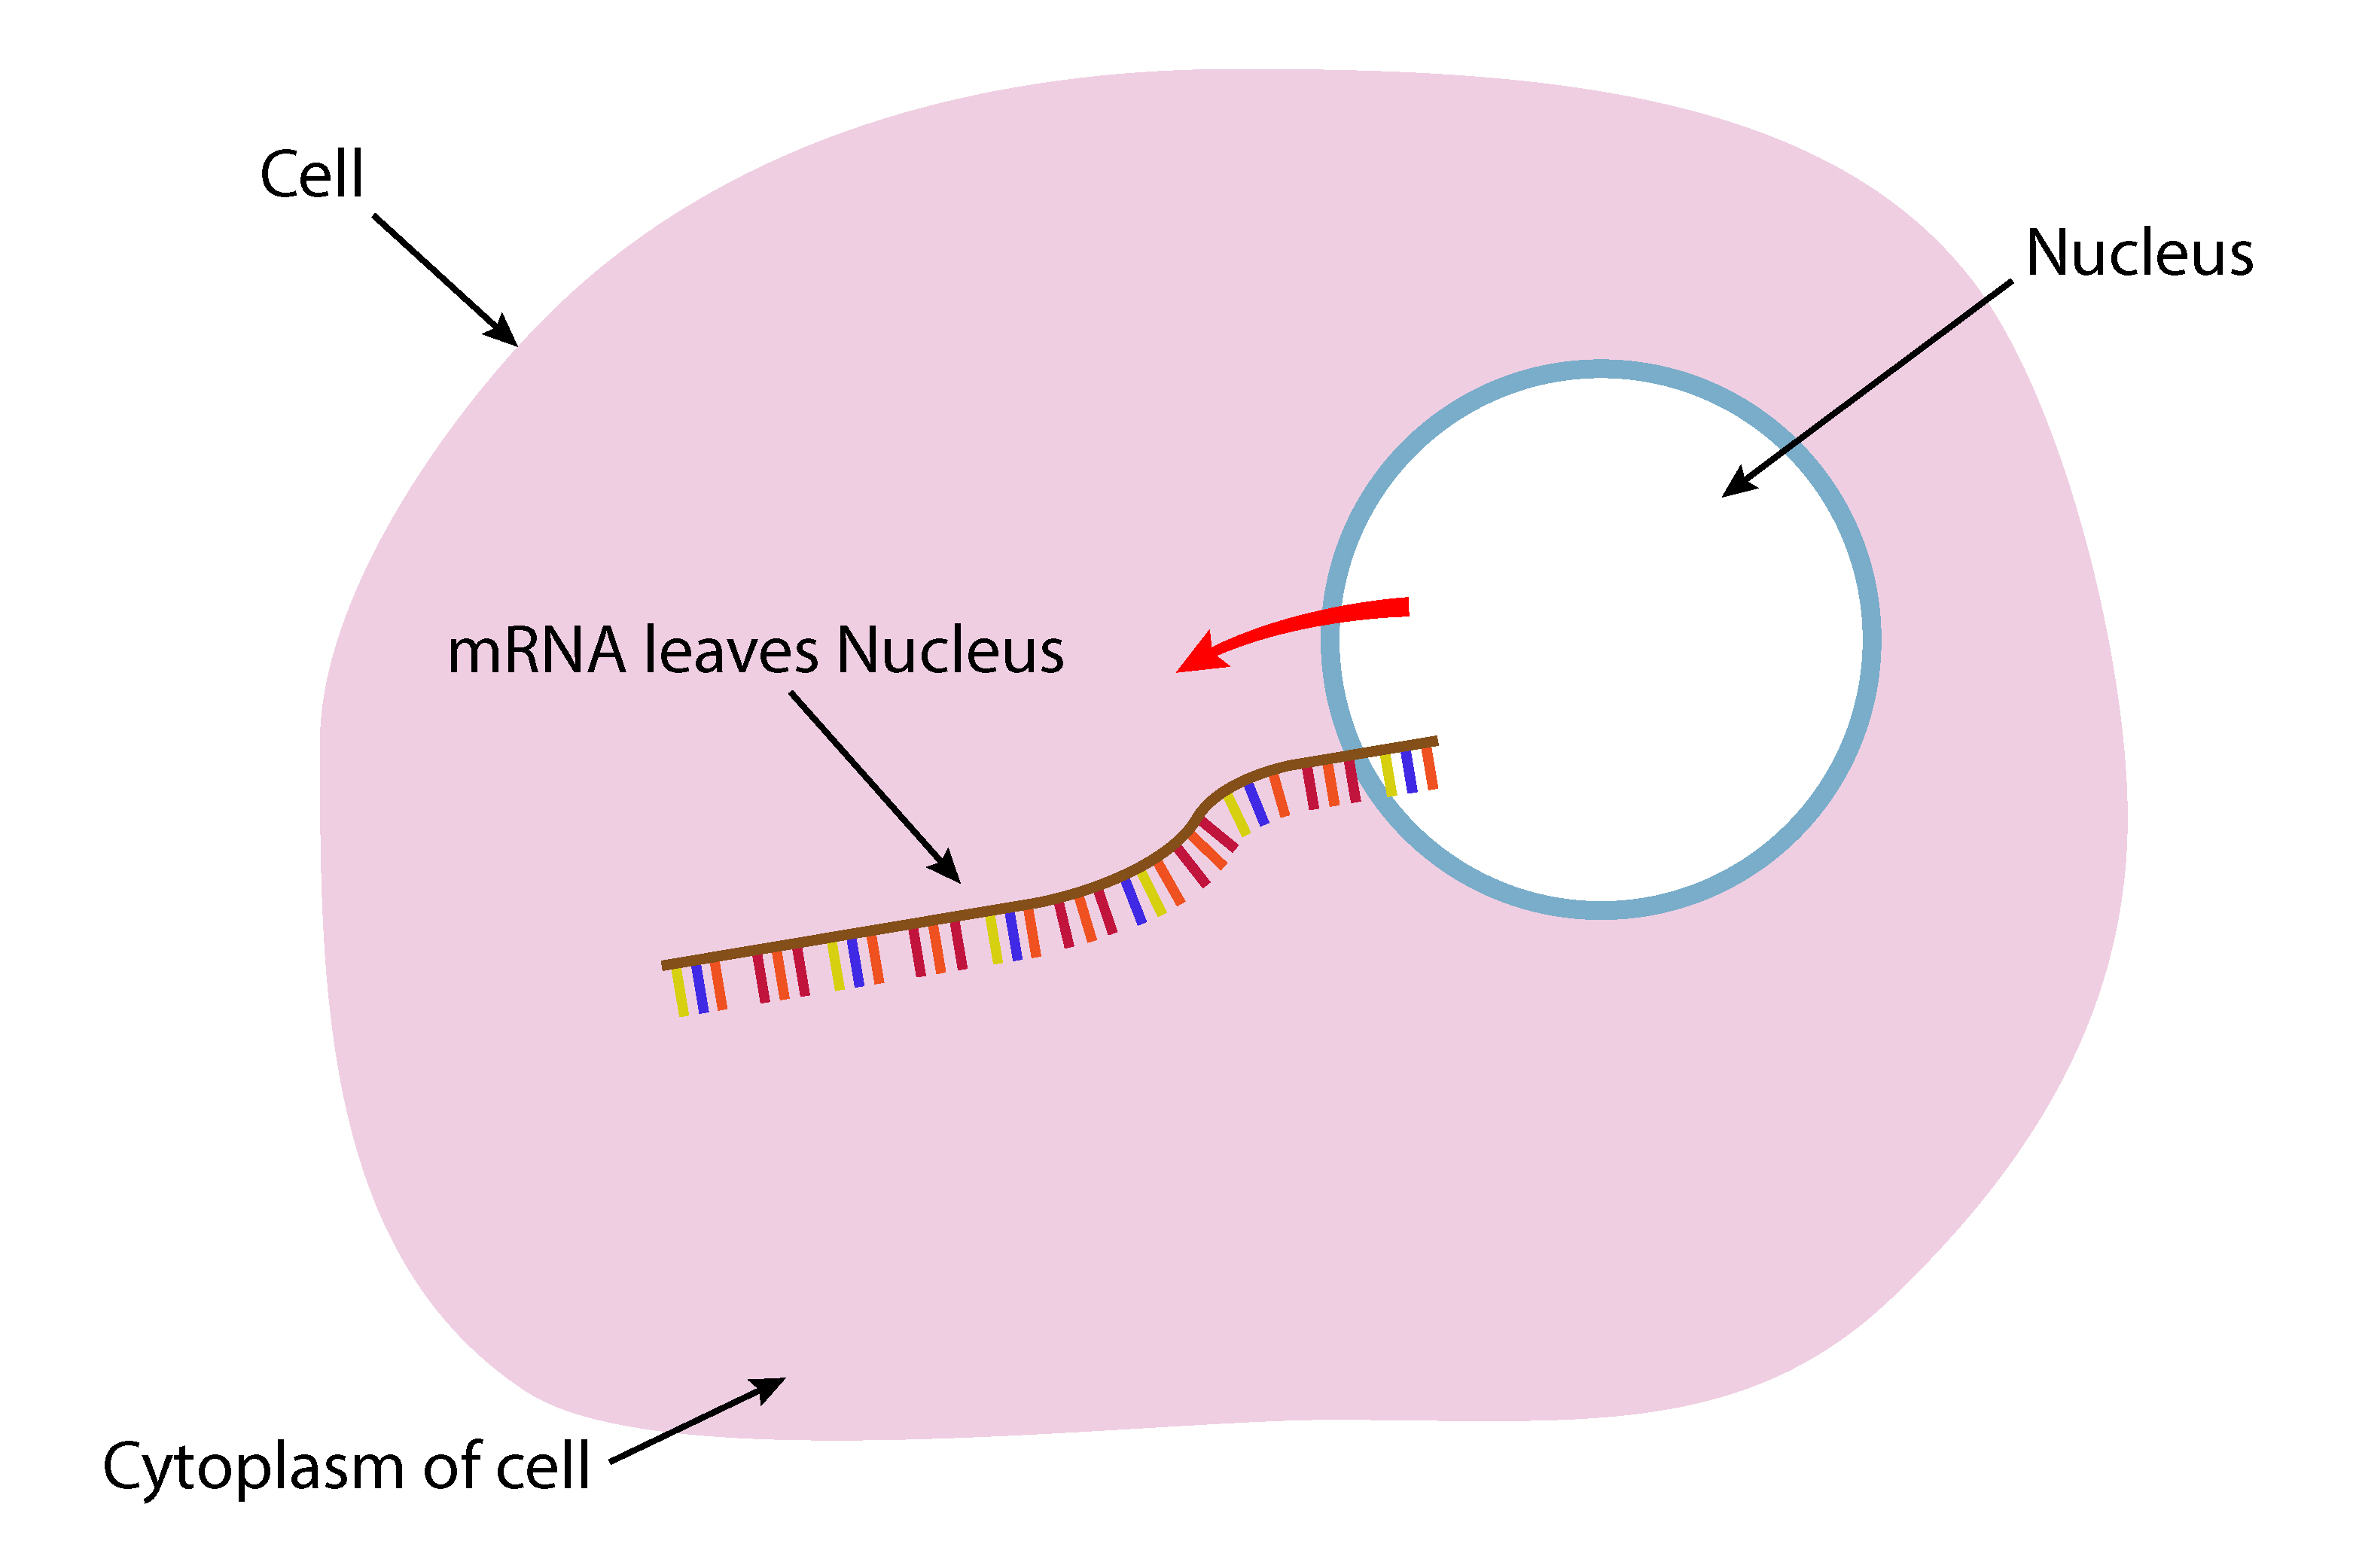 Because of the base change mRNA can leave the nucleus to the cytoplasm